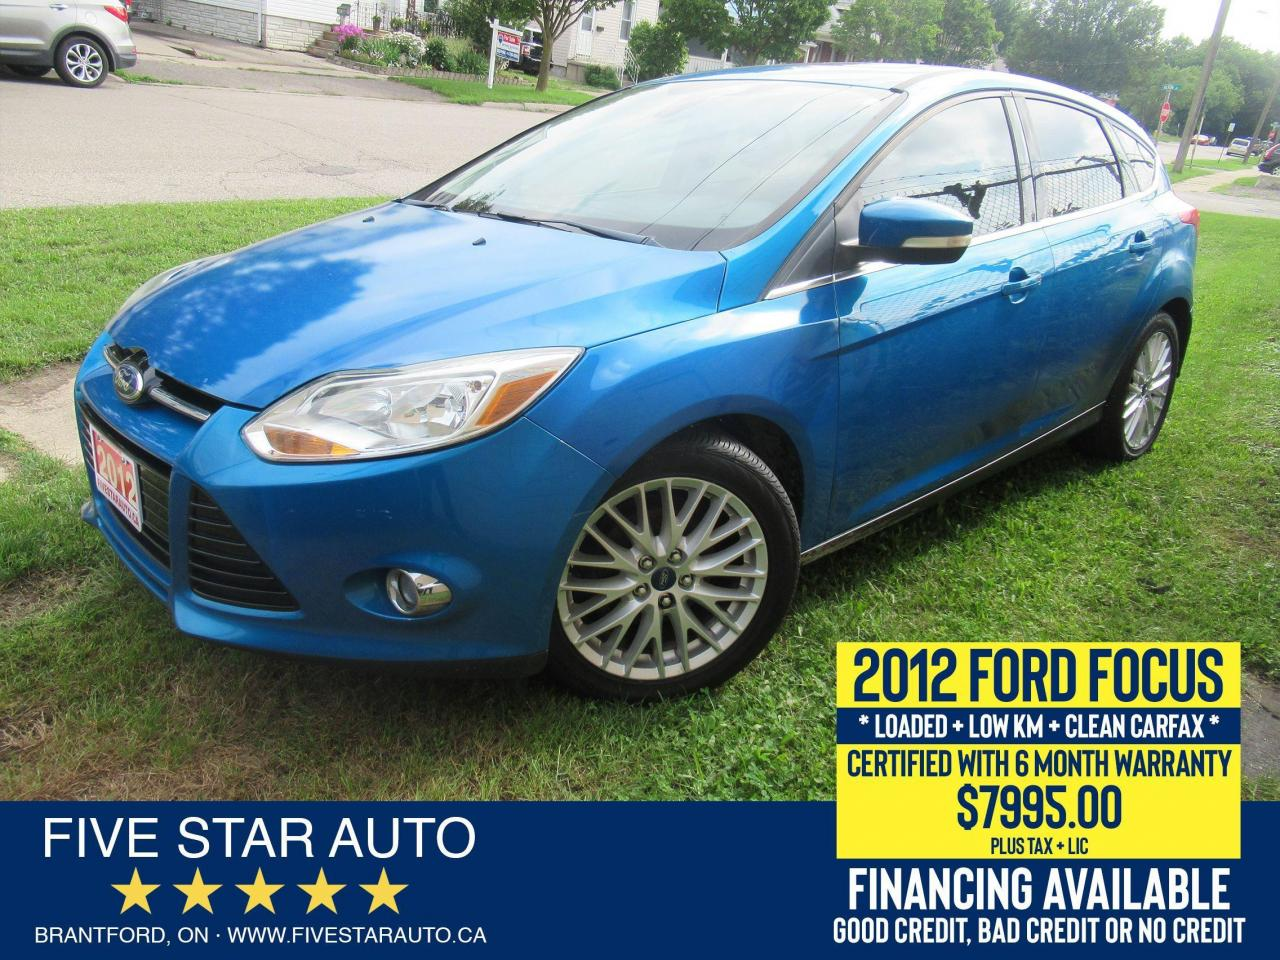 2012 Ford Focus SEL *Clean Carfax* Certified w/ 6 Month Warranty